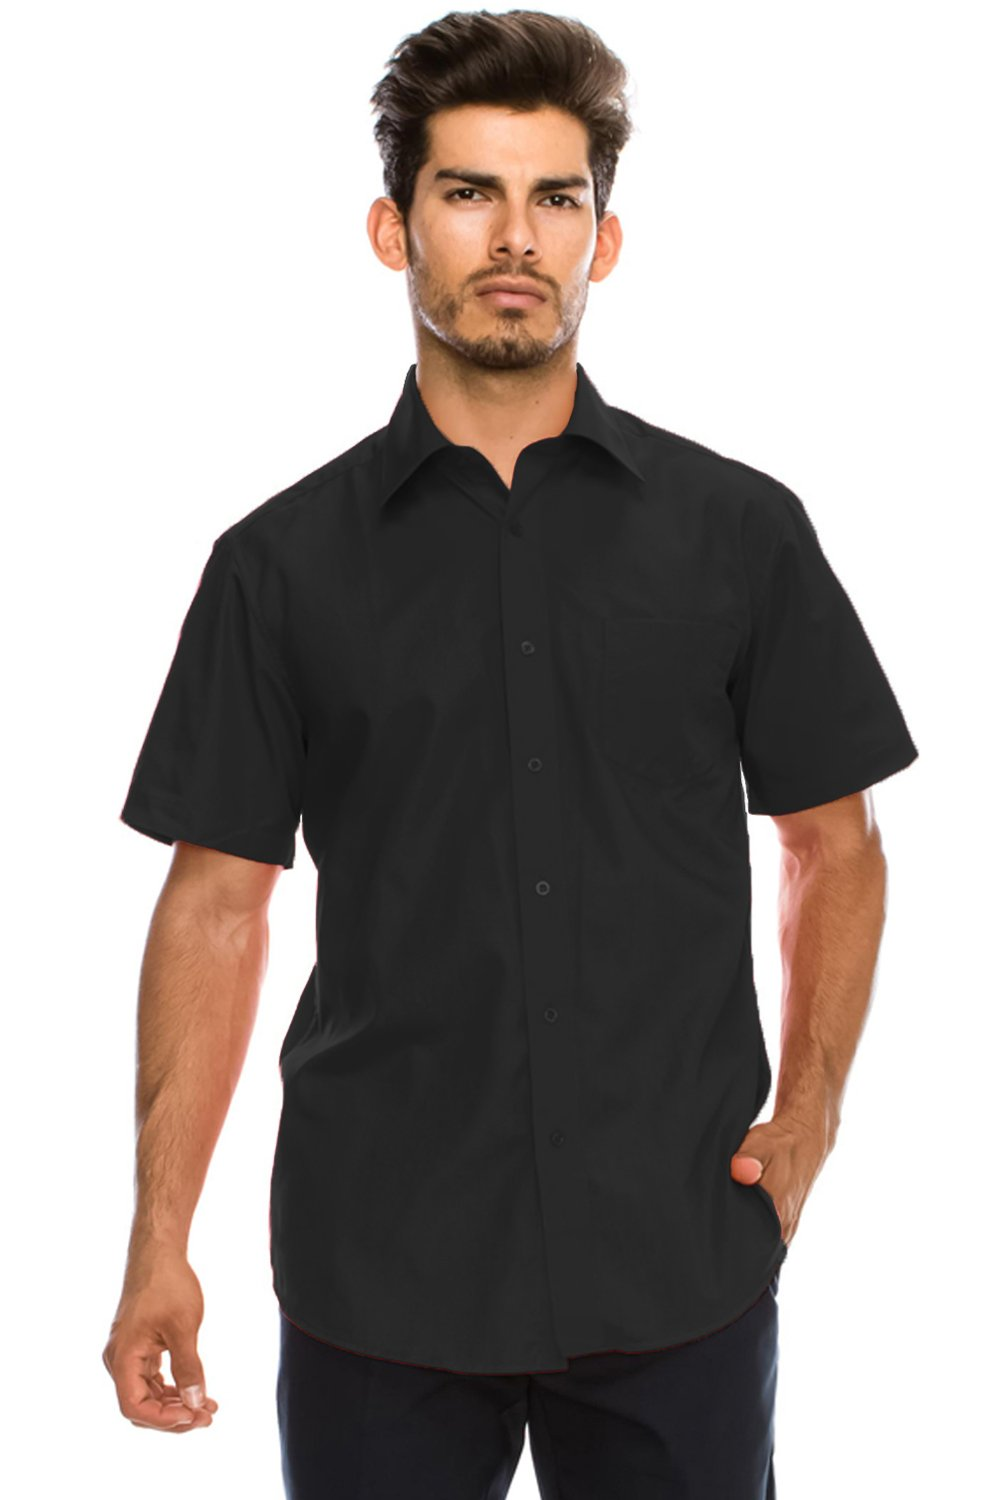 JC DISTRO Men's Regular-Fit Solid Color Short Sleeve Dress Shirt, Black Shirts (XL)